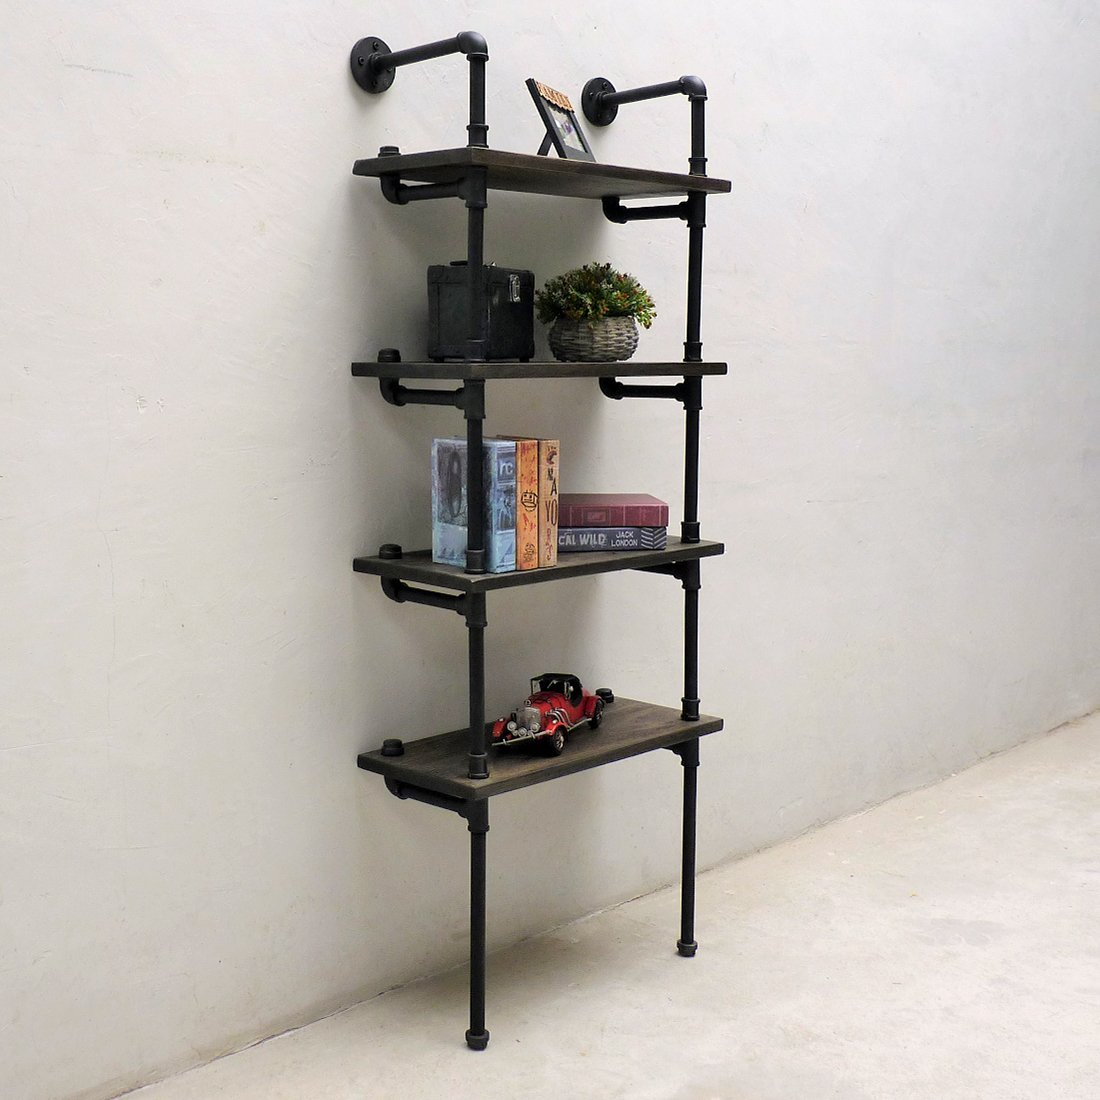 Superb Sacramento Industrial Chic Etagere Bookcase Display In 2019 Home Interior And Landscaping Ymoonbapapsignezvosmurscom